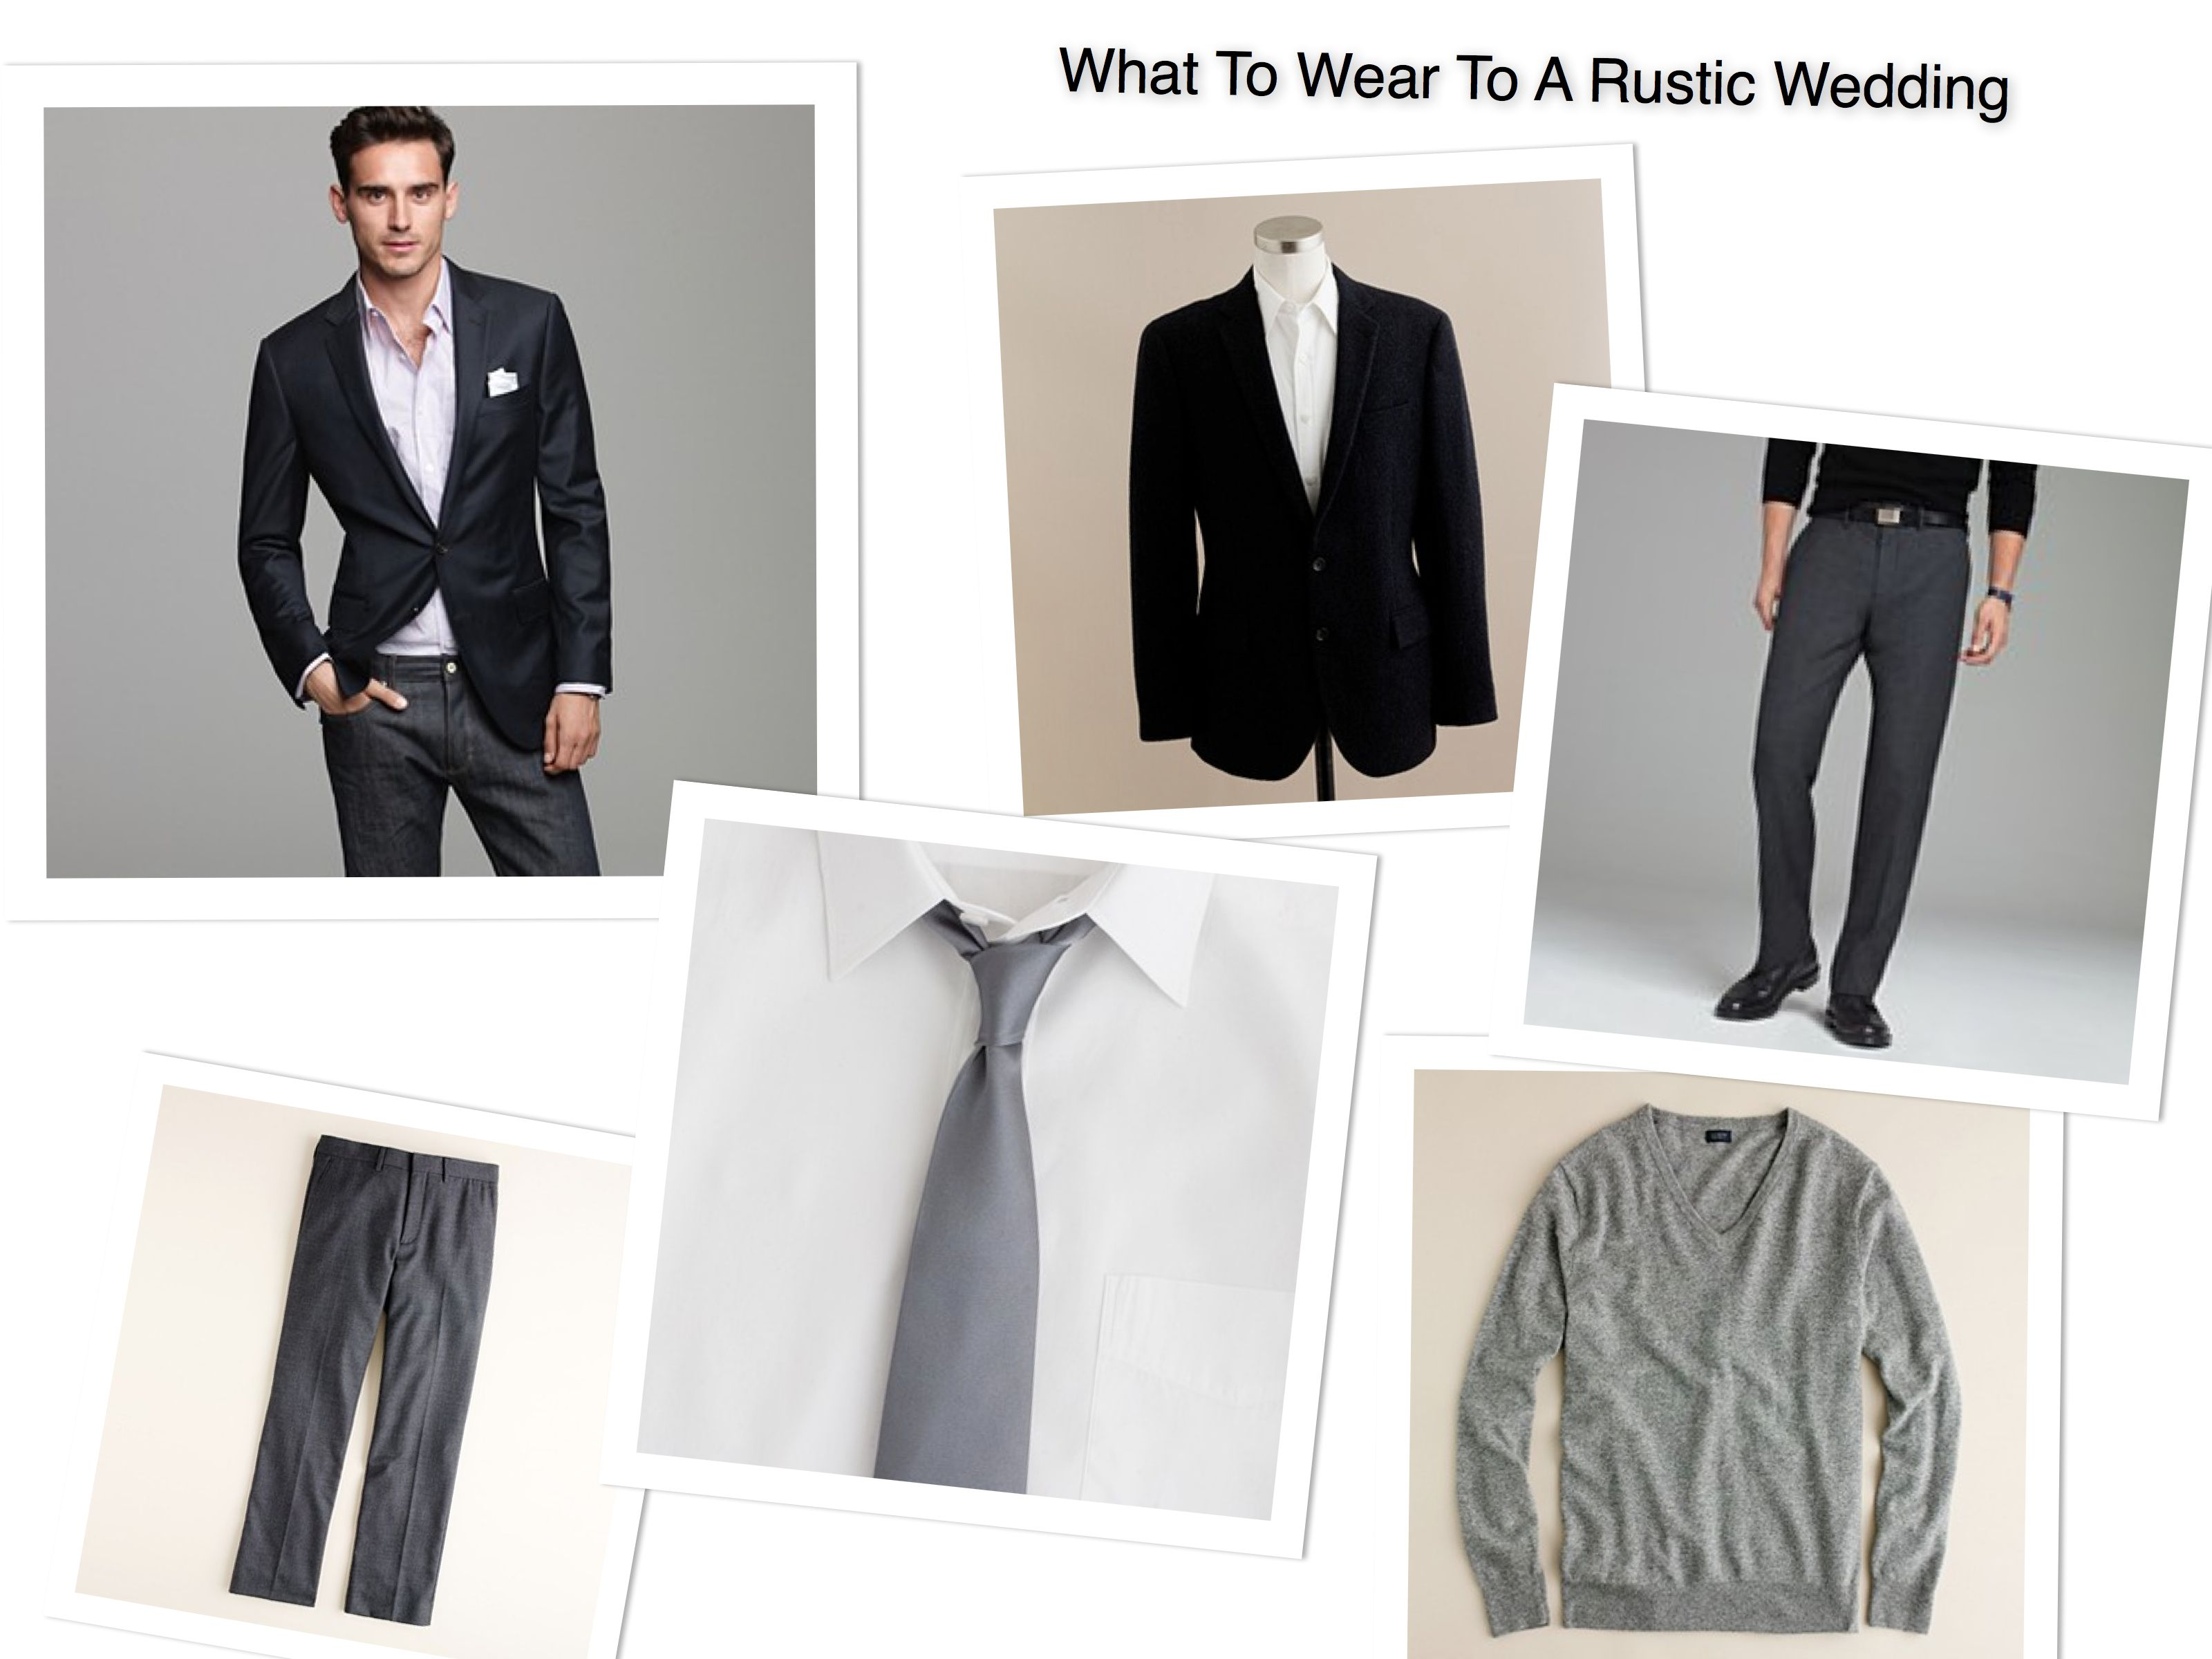 What A Man Should Wear To A Rustic Wedding